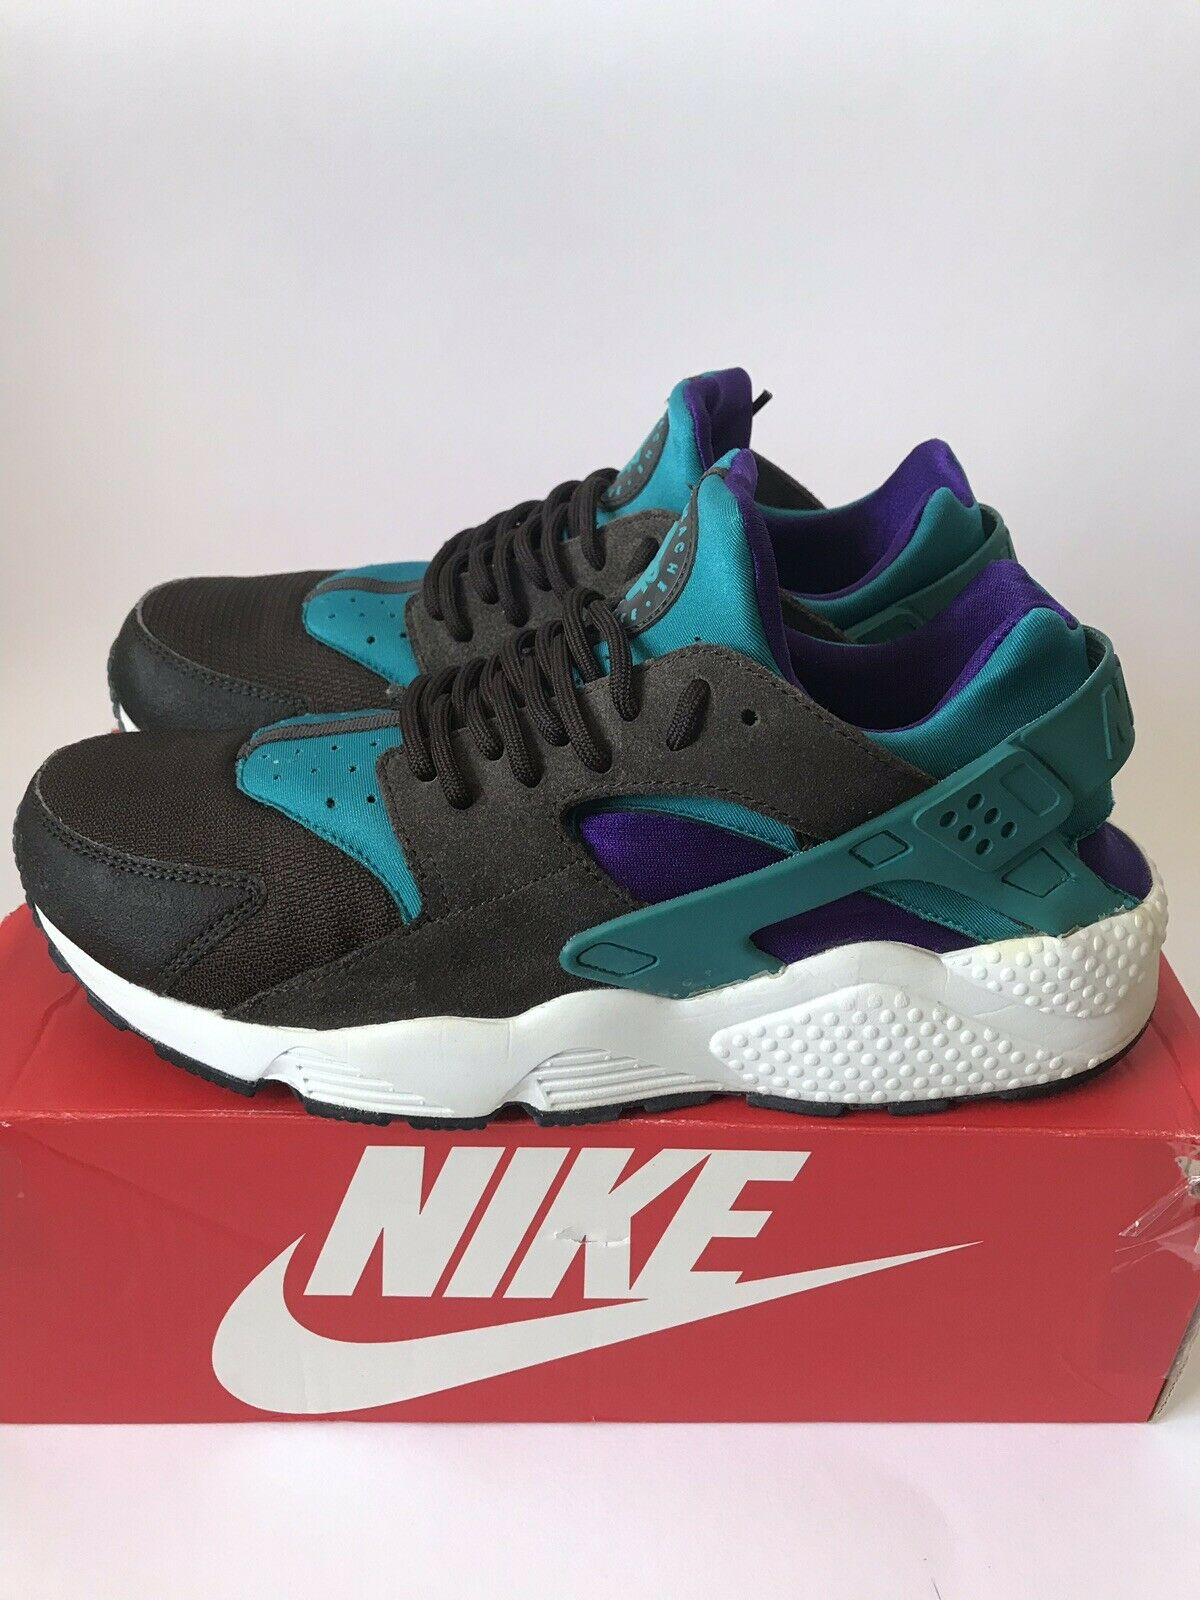 Nike Air Huarache Teal Classic Brown Uk9.5 Us10.5 Eu44.5